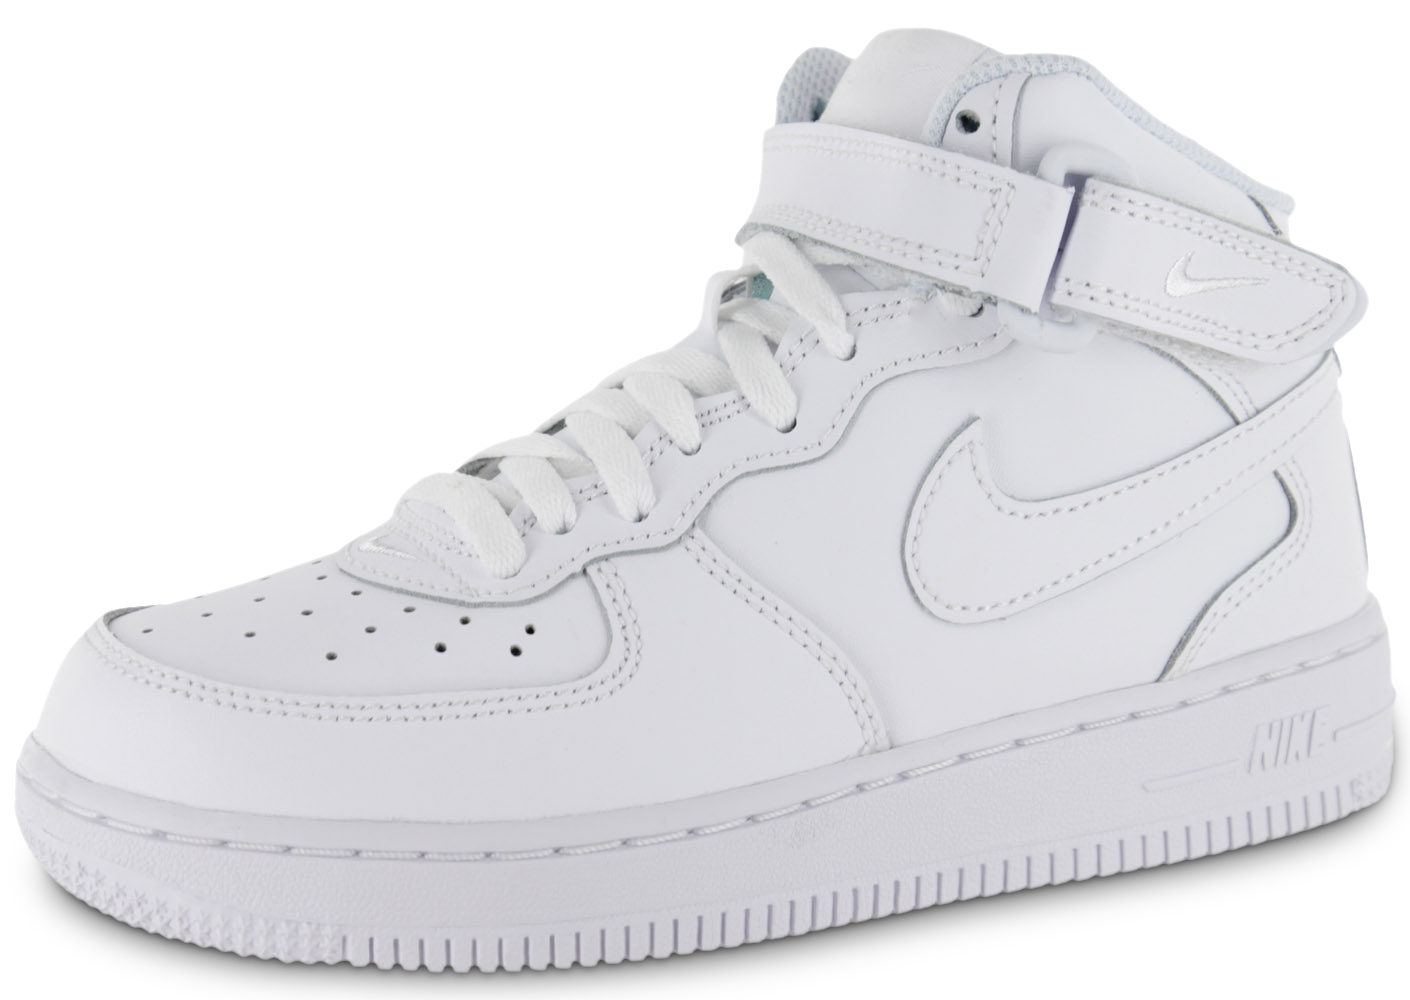 nike air force blanche montante crampon